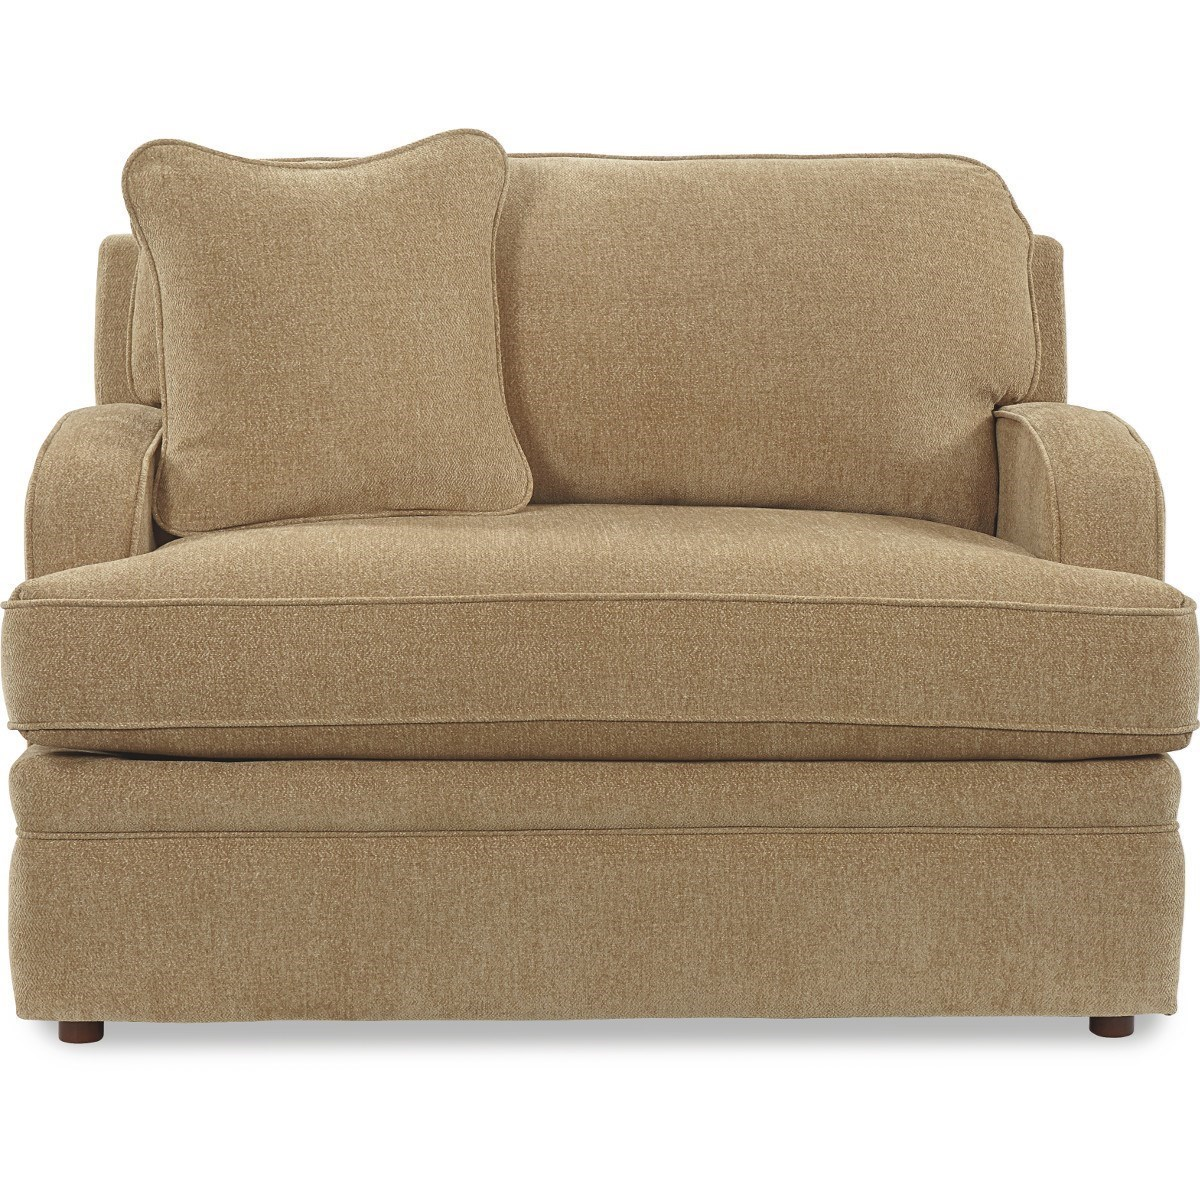 Chair That Turns Into A Twin Bed La Z Boy Diana Transitional Supreme Comfort Twin Sleep Chair